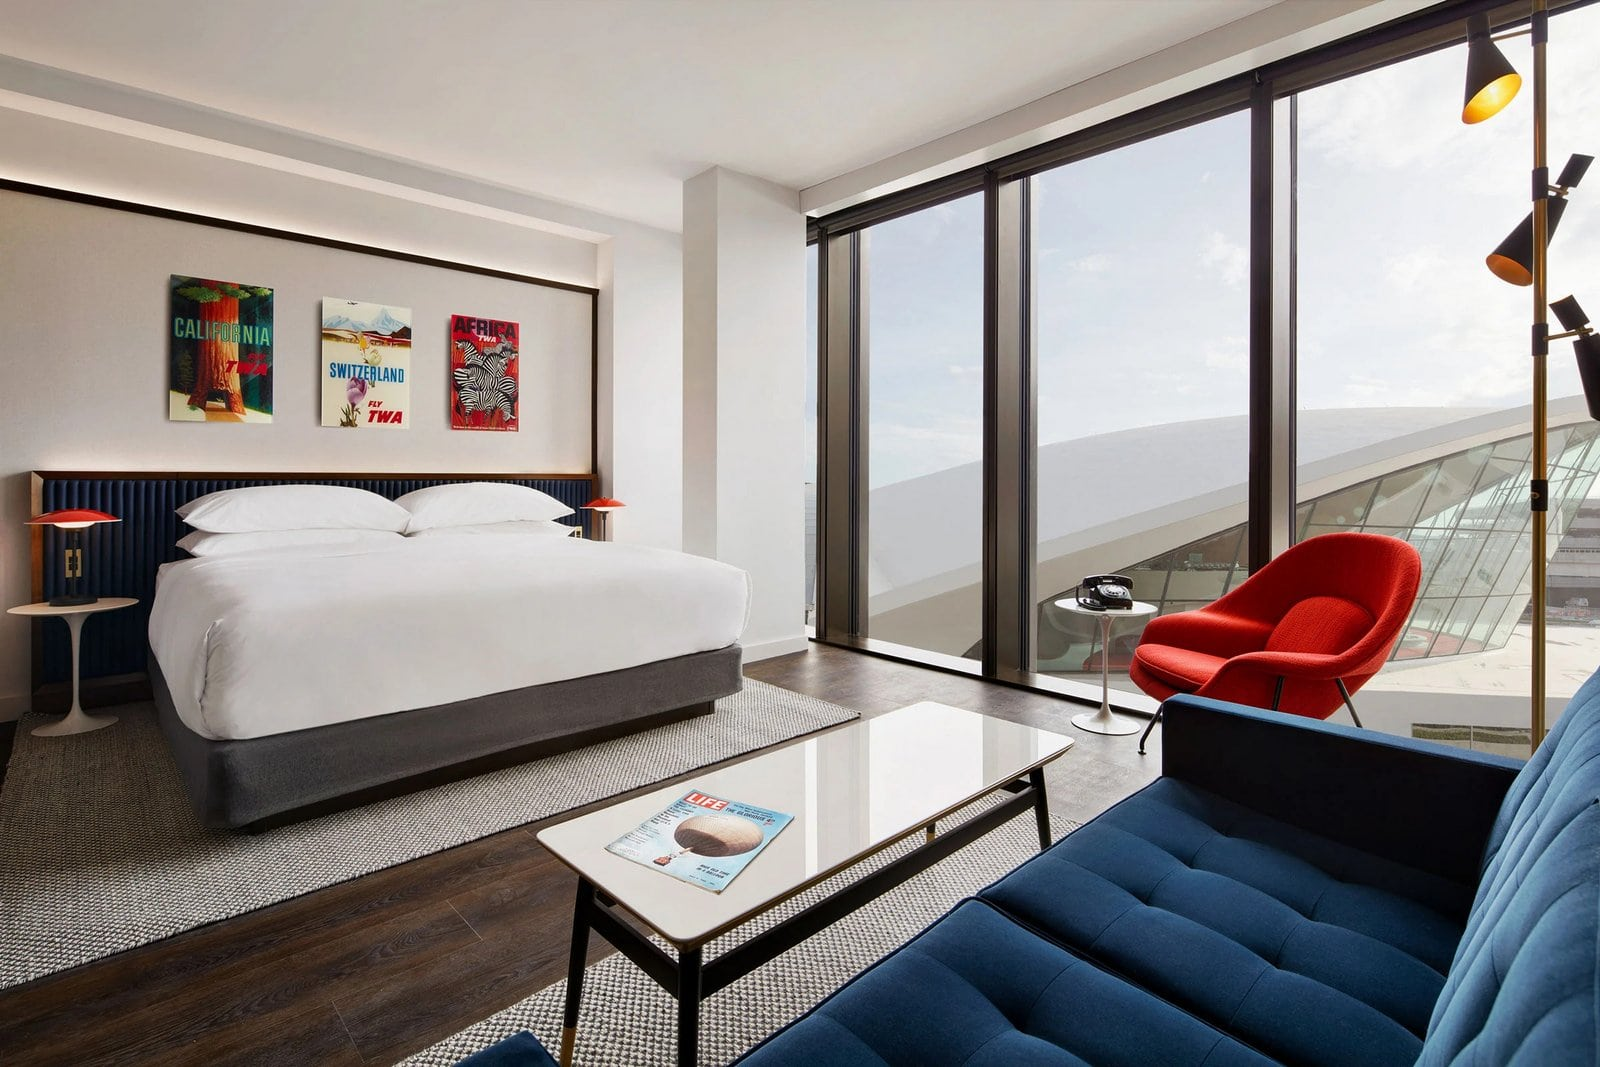 New TWA Hotel Executive King Suite with views